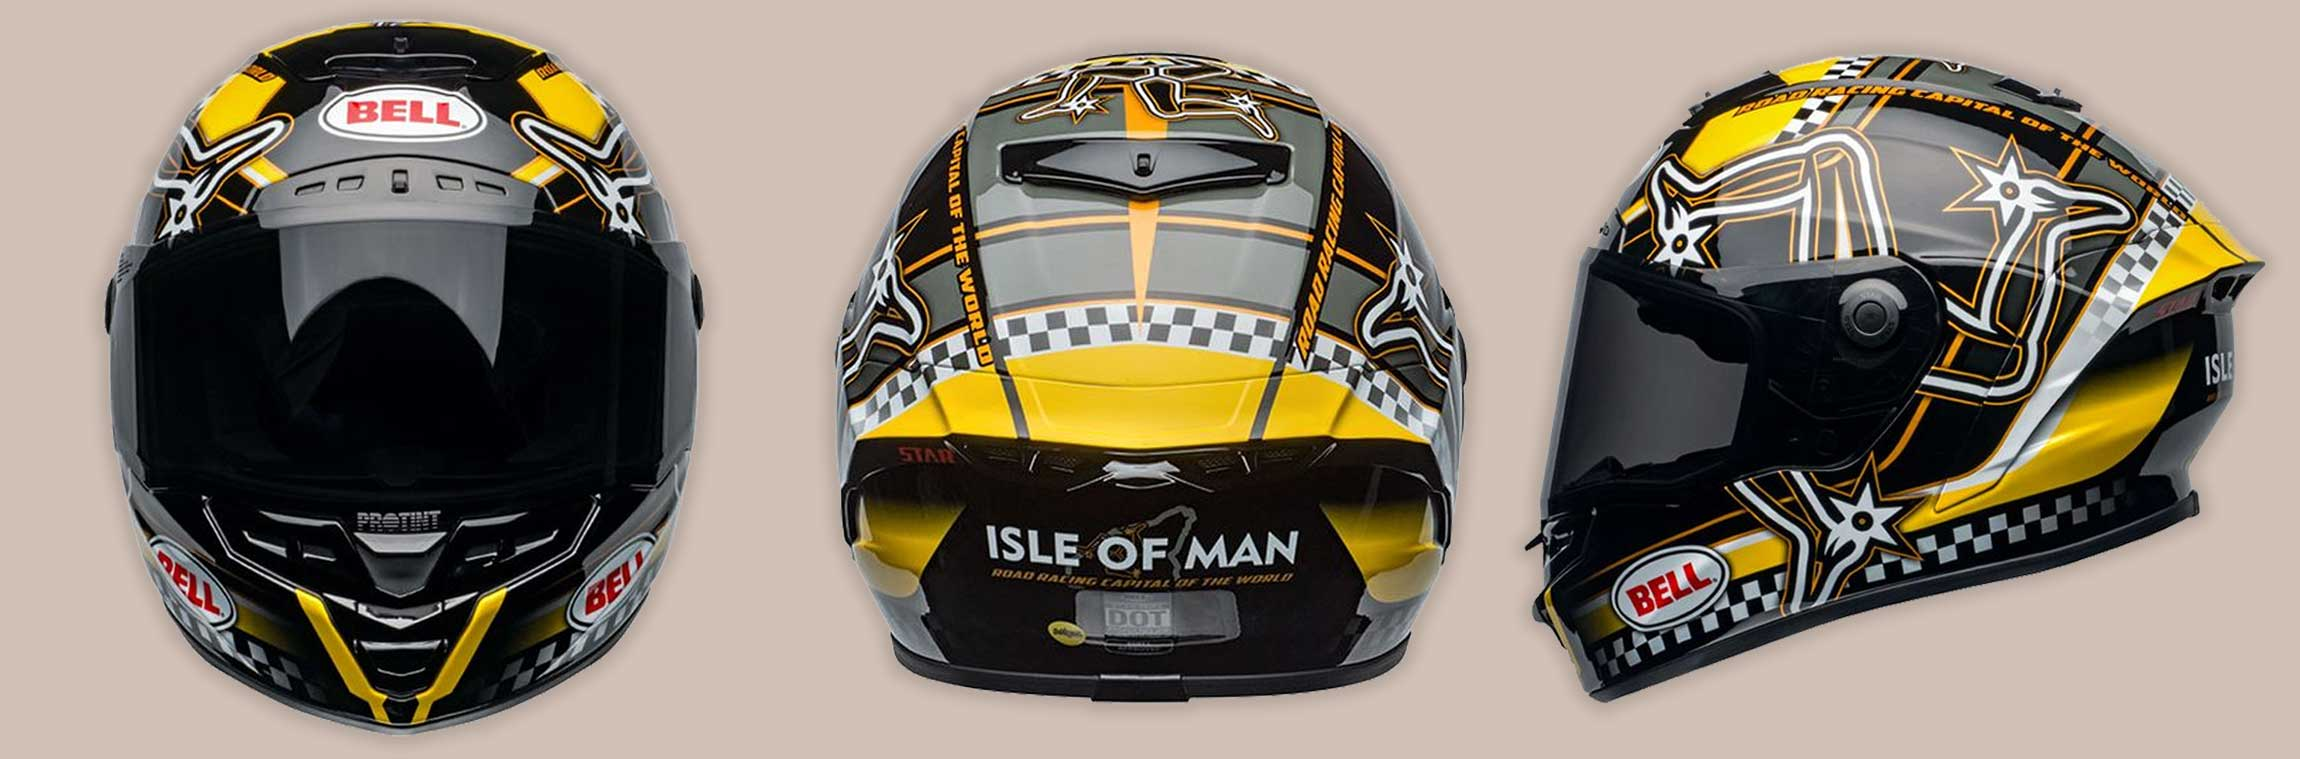 Bell Moto 2020 | ISLE OF MAN GLOSS BLACK-YELLOW